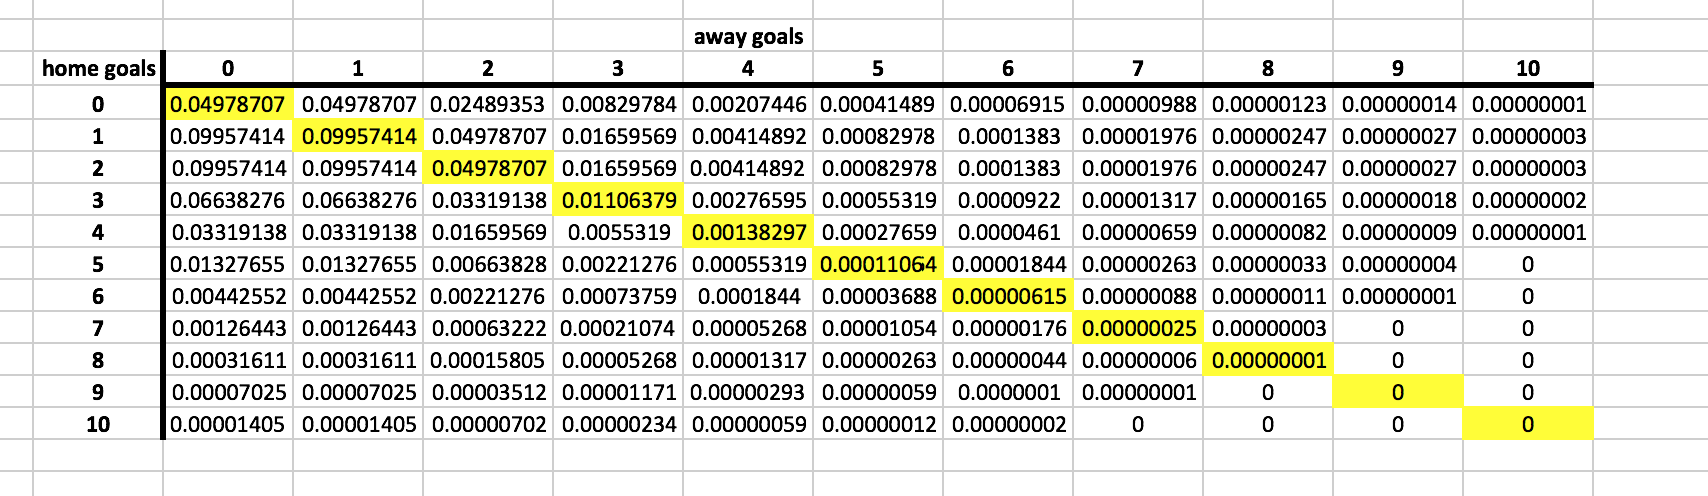 To Find Out The Probability Of A Draw, We Can Then Sum Up The Probabilities  Of All The Tied Score Lines (which I've Highlighted In Yellow For Clarity)